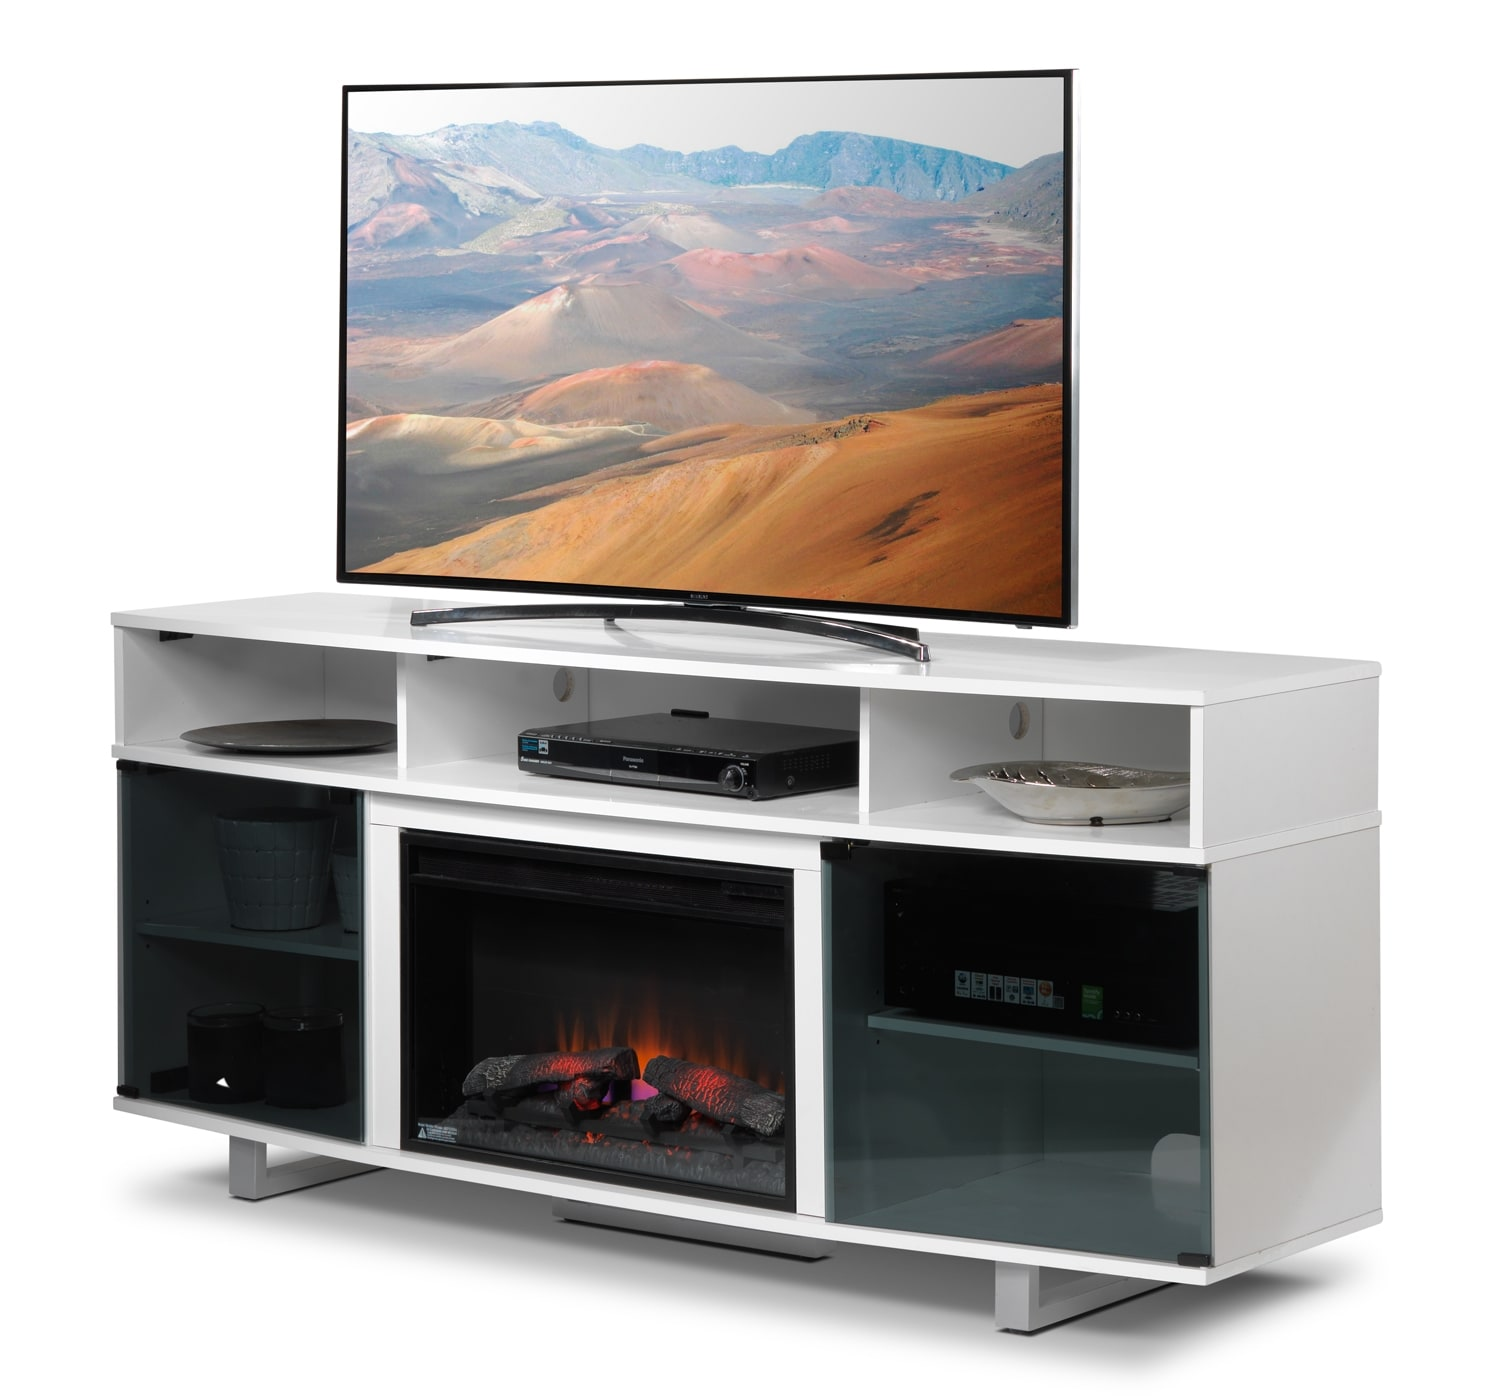 Entertainment Furniture - Sorenson Fireplace TV Stand - White